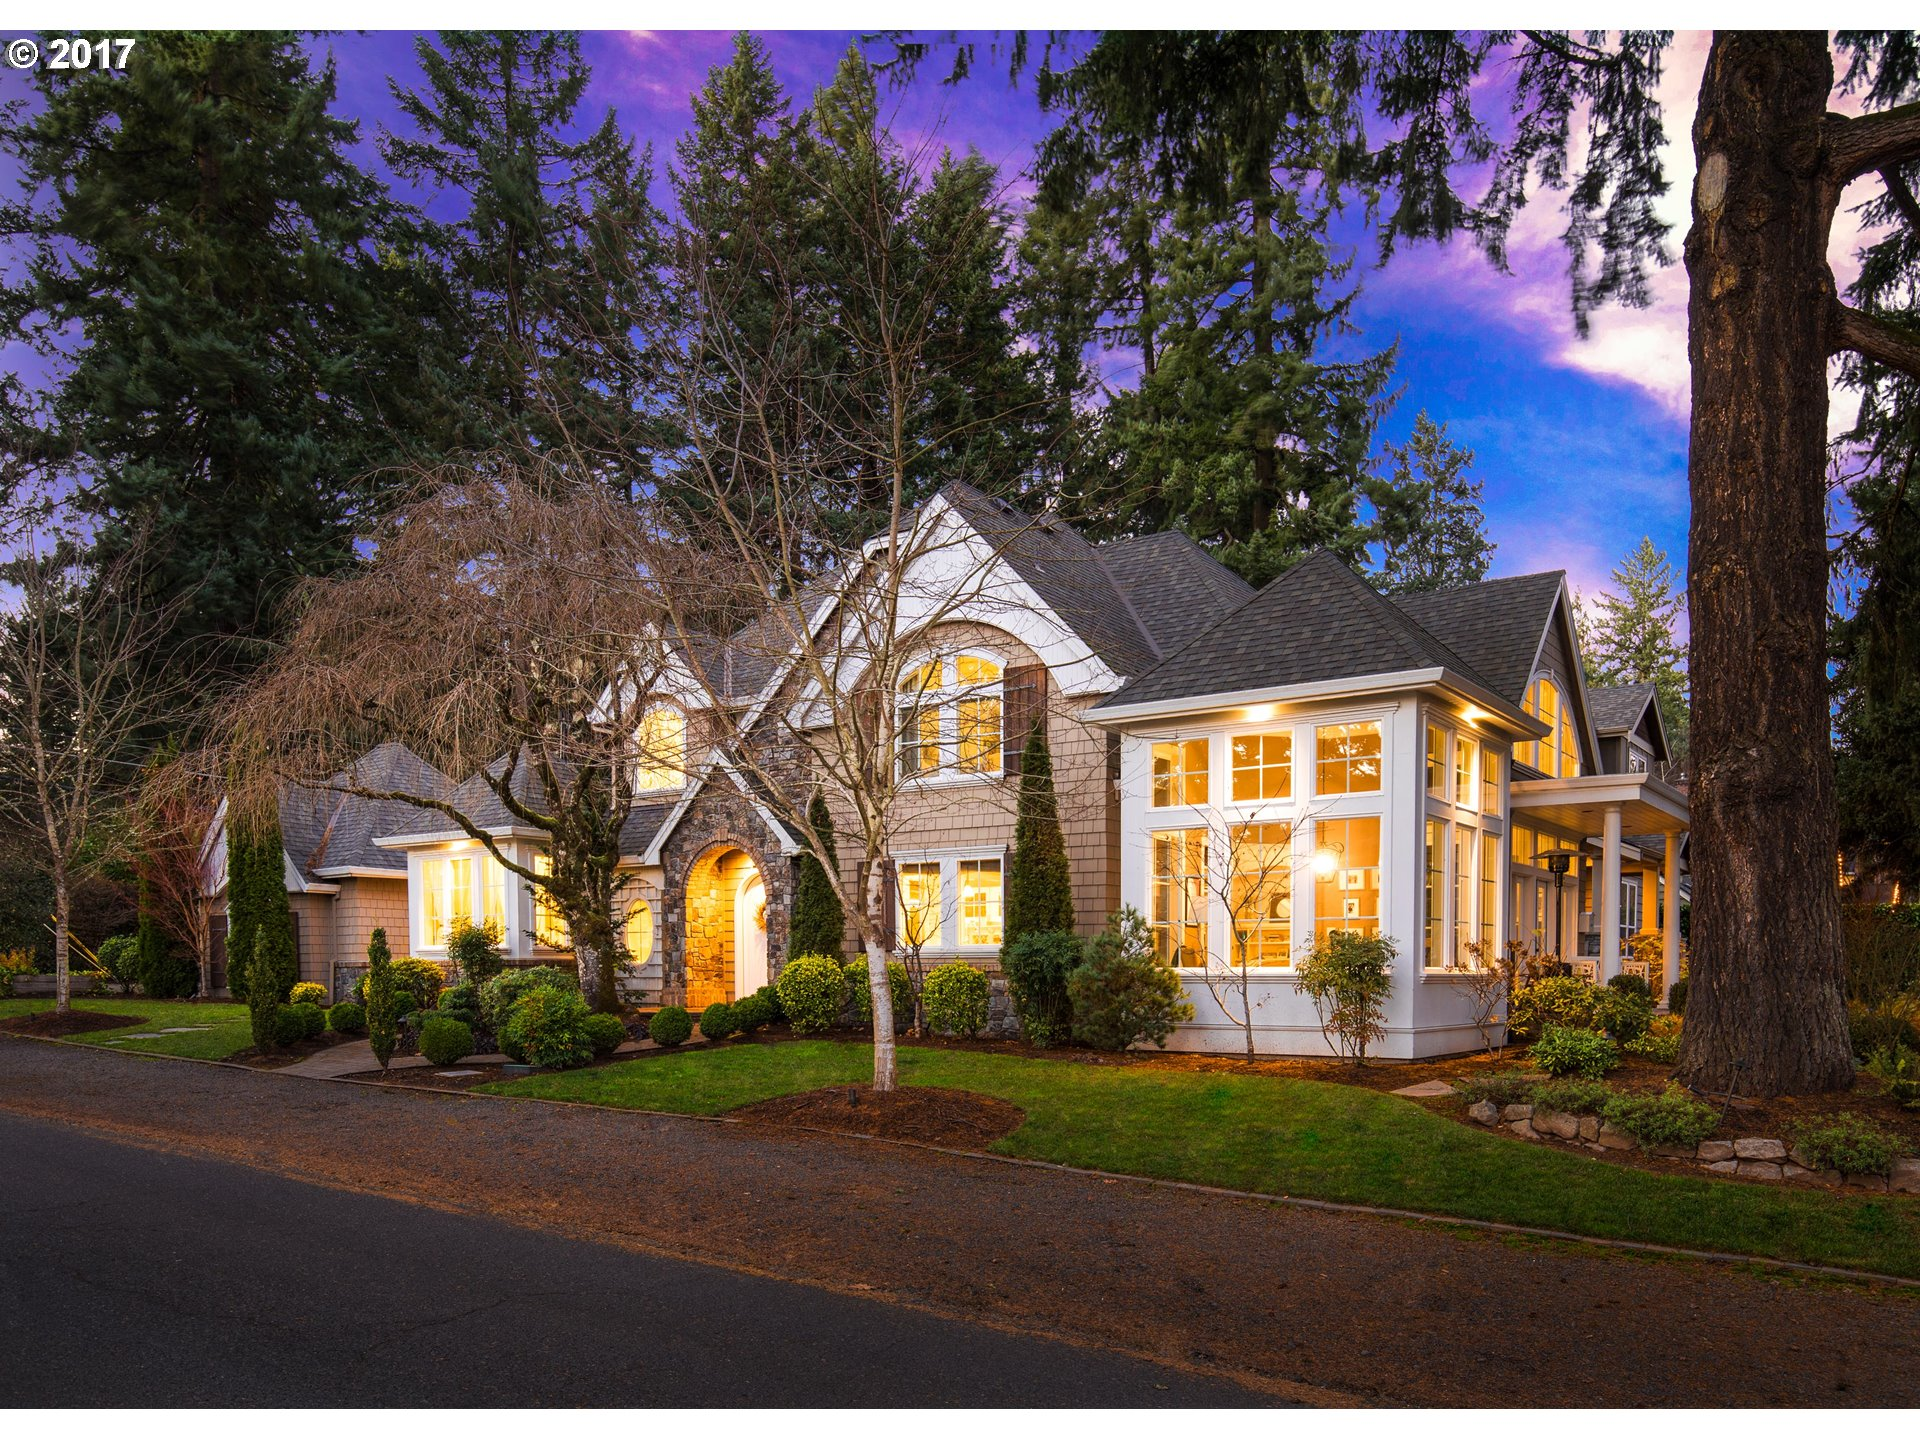 610 9TH ST, Lake Oswego, OR 97034